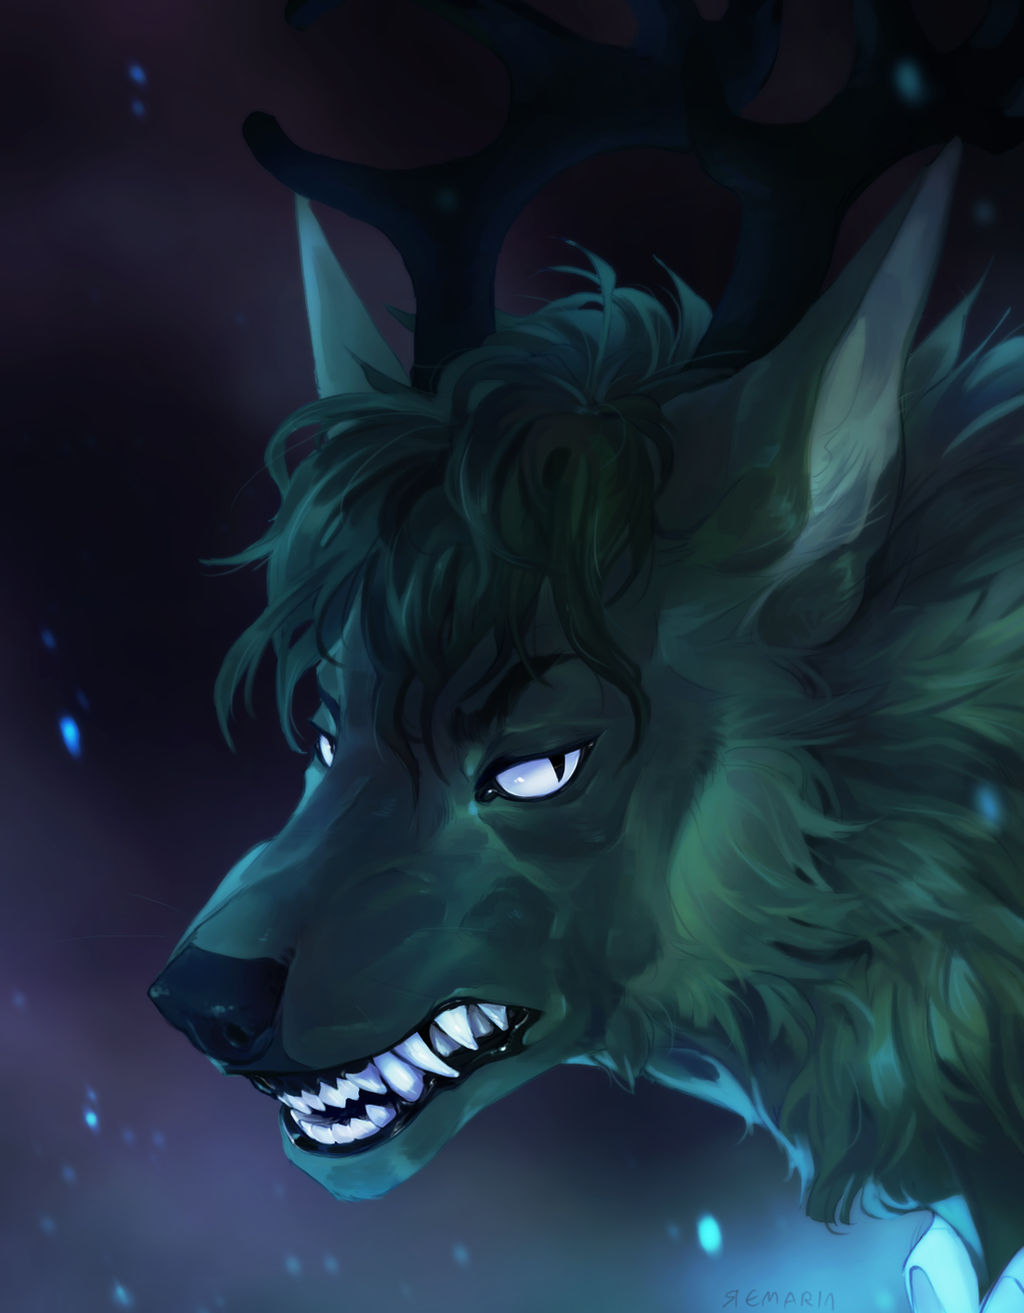 Headshot:. Sekushi by Remarin